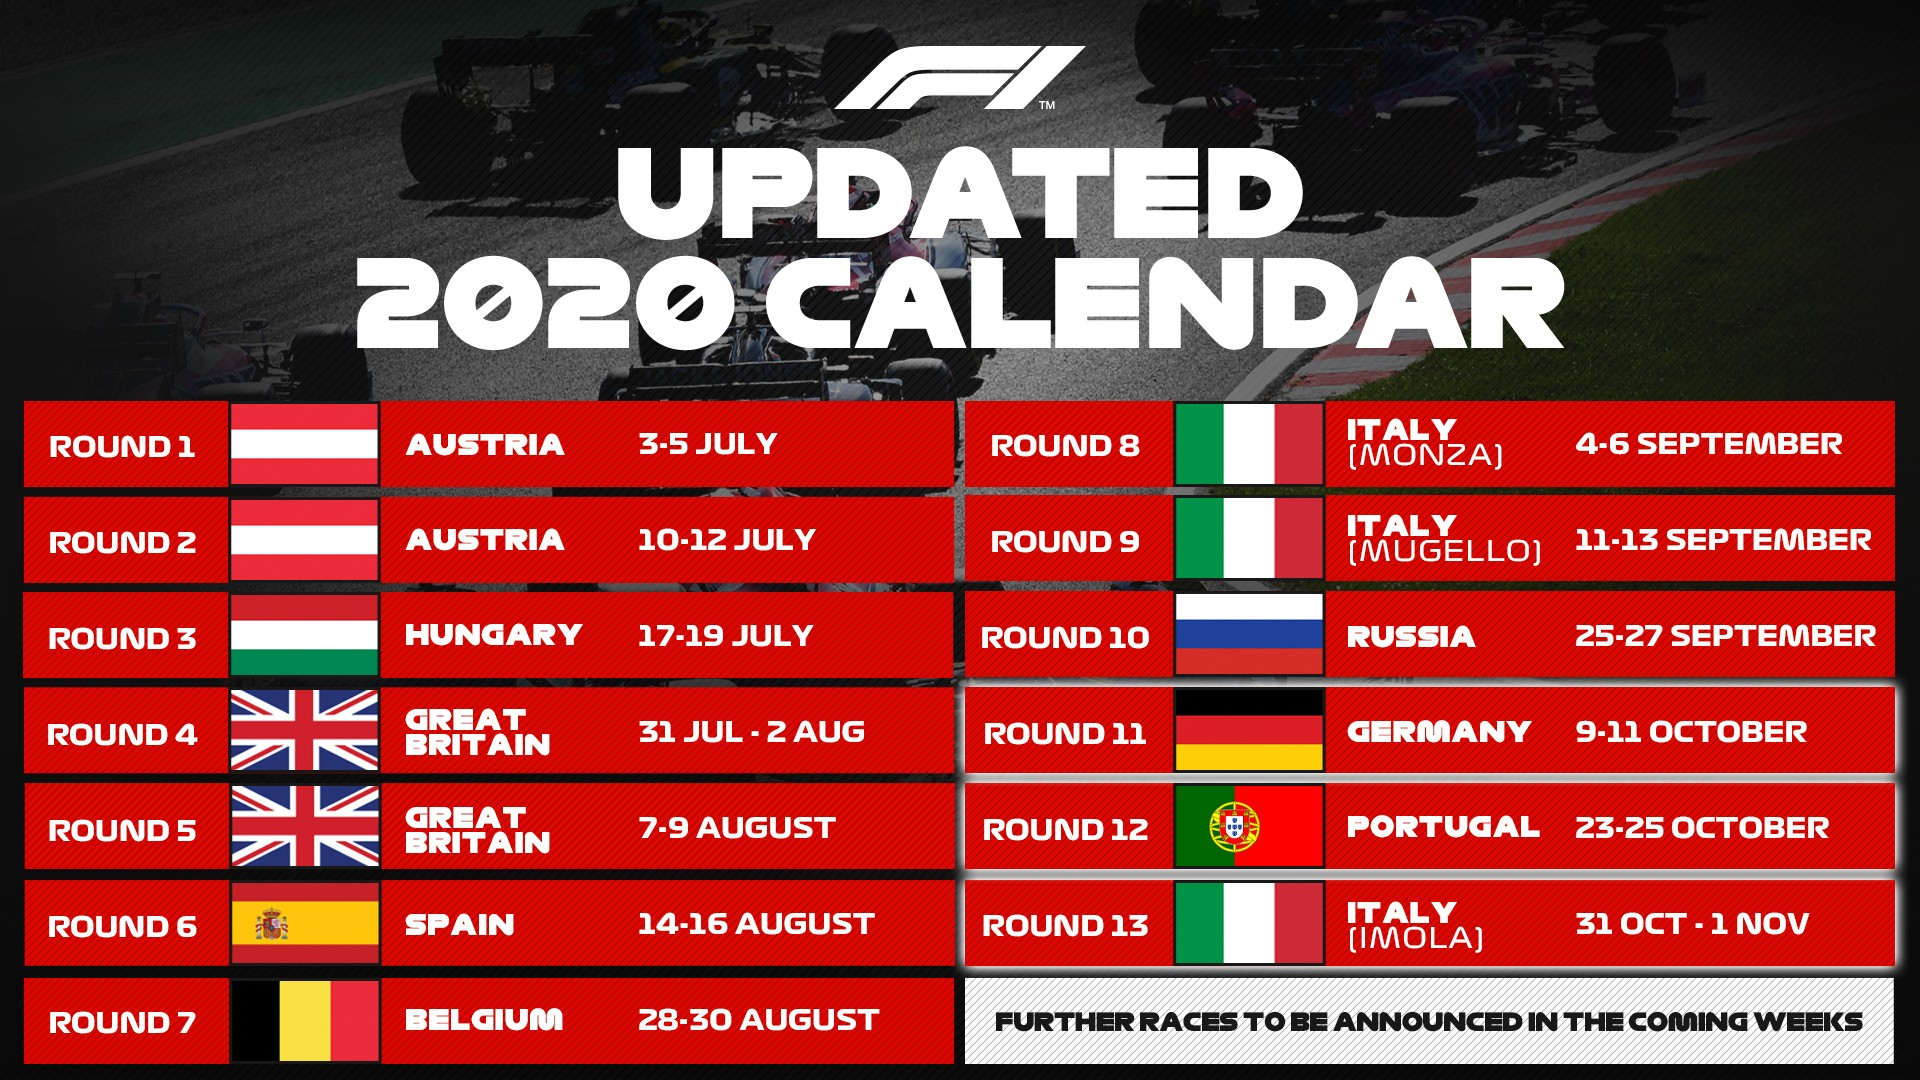 2020 F1 Calendar Expands to 13 Races